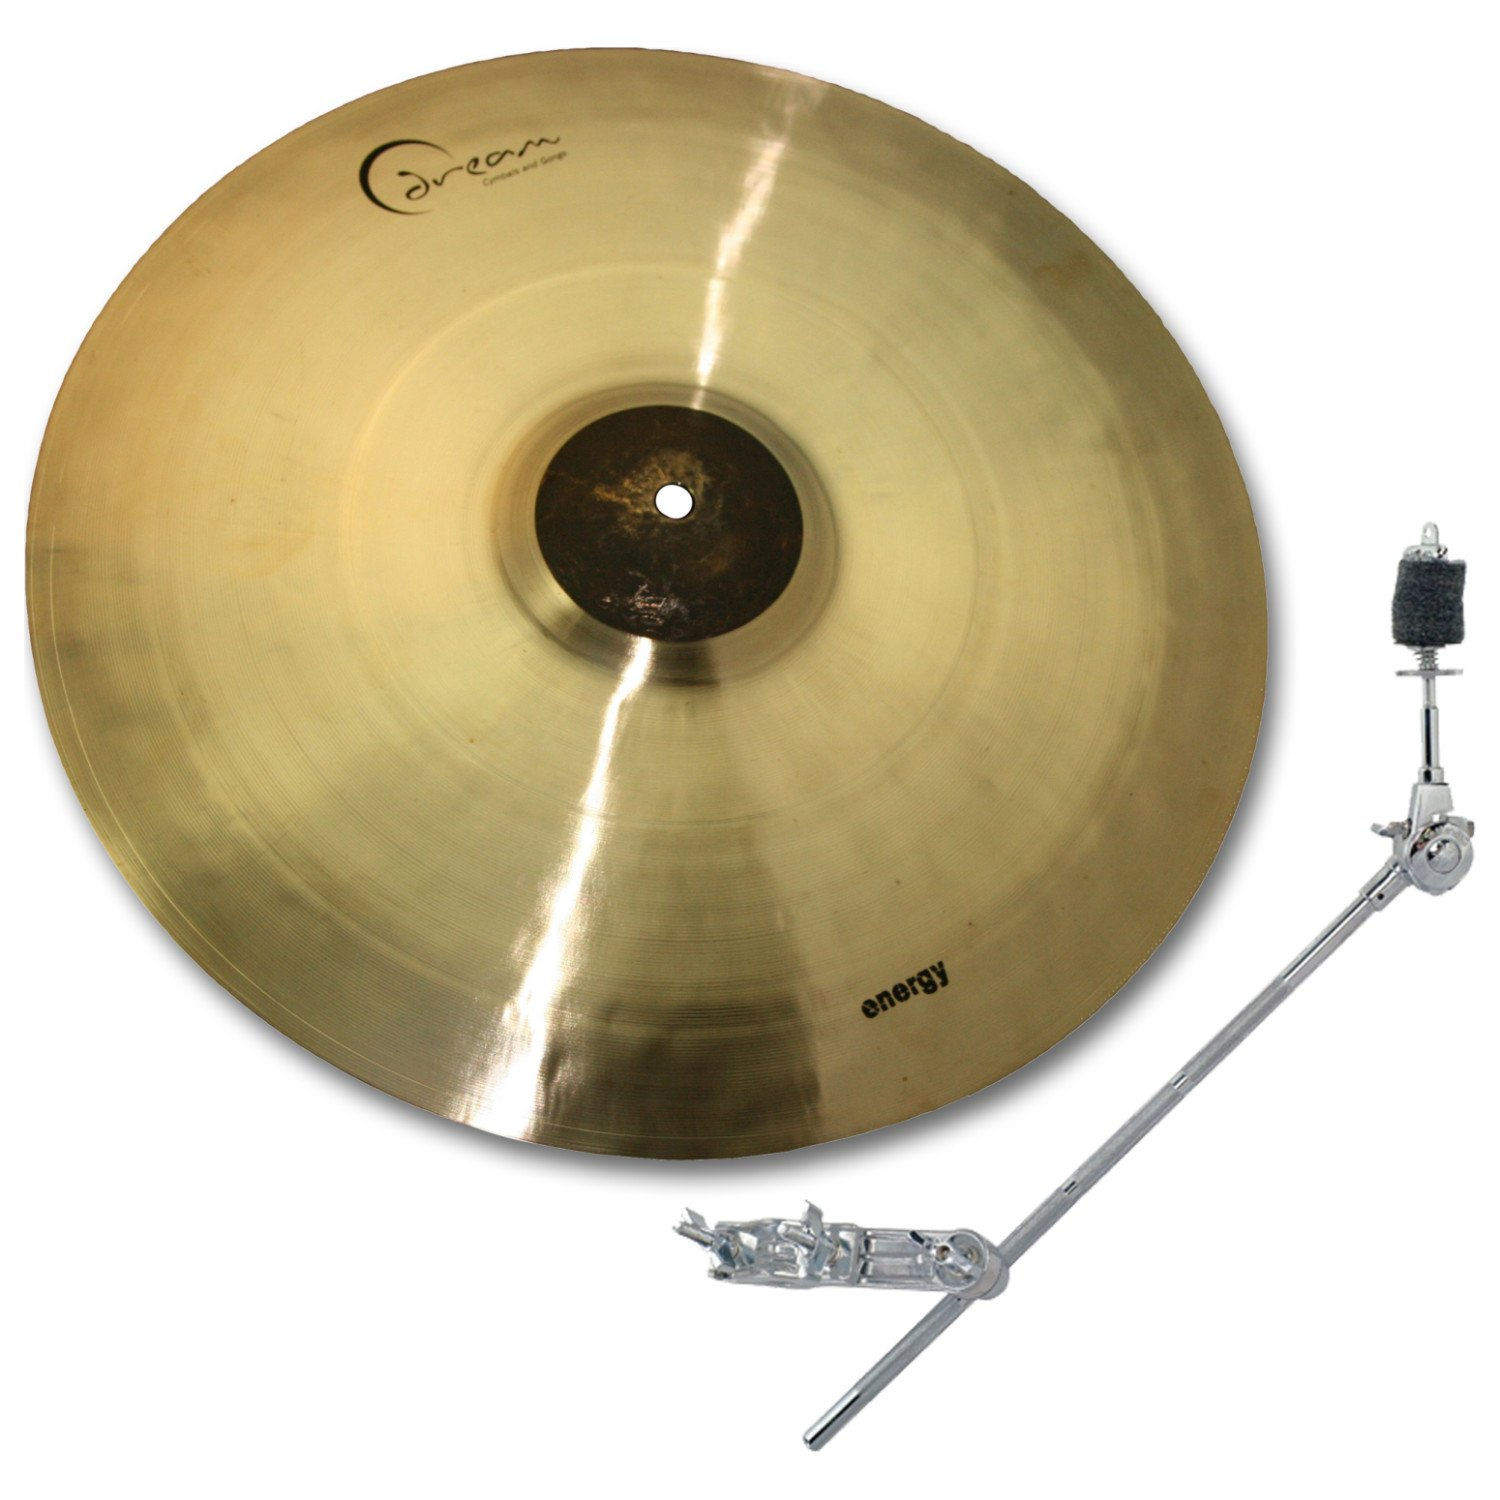 Dream Cymbals ECR18 18'' Energy Series Crash Cymbal w/ Free Boom Arm and Clamp by Dream Cymbals and Gongs